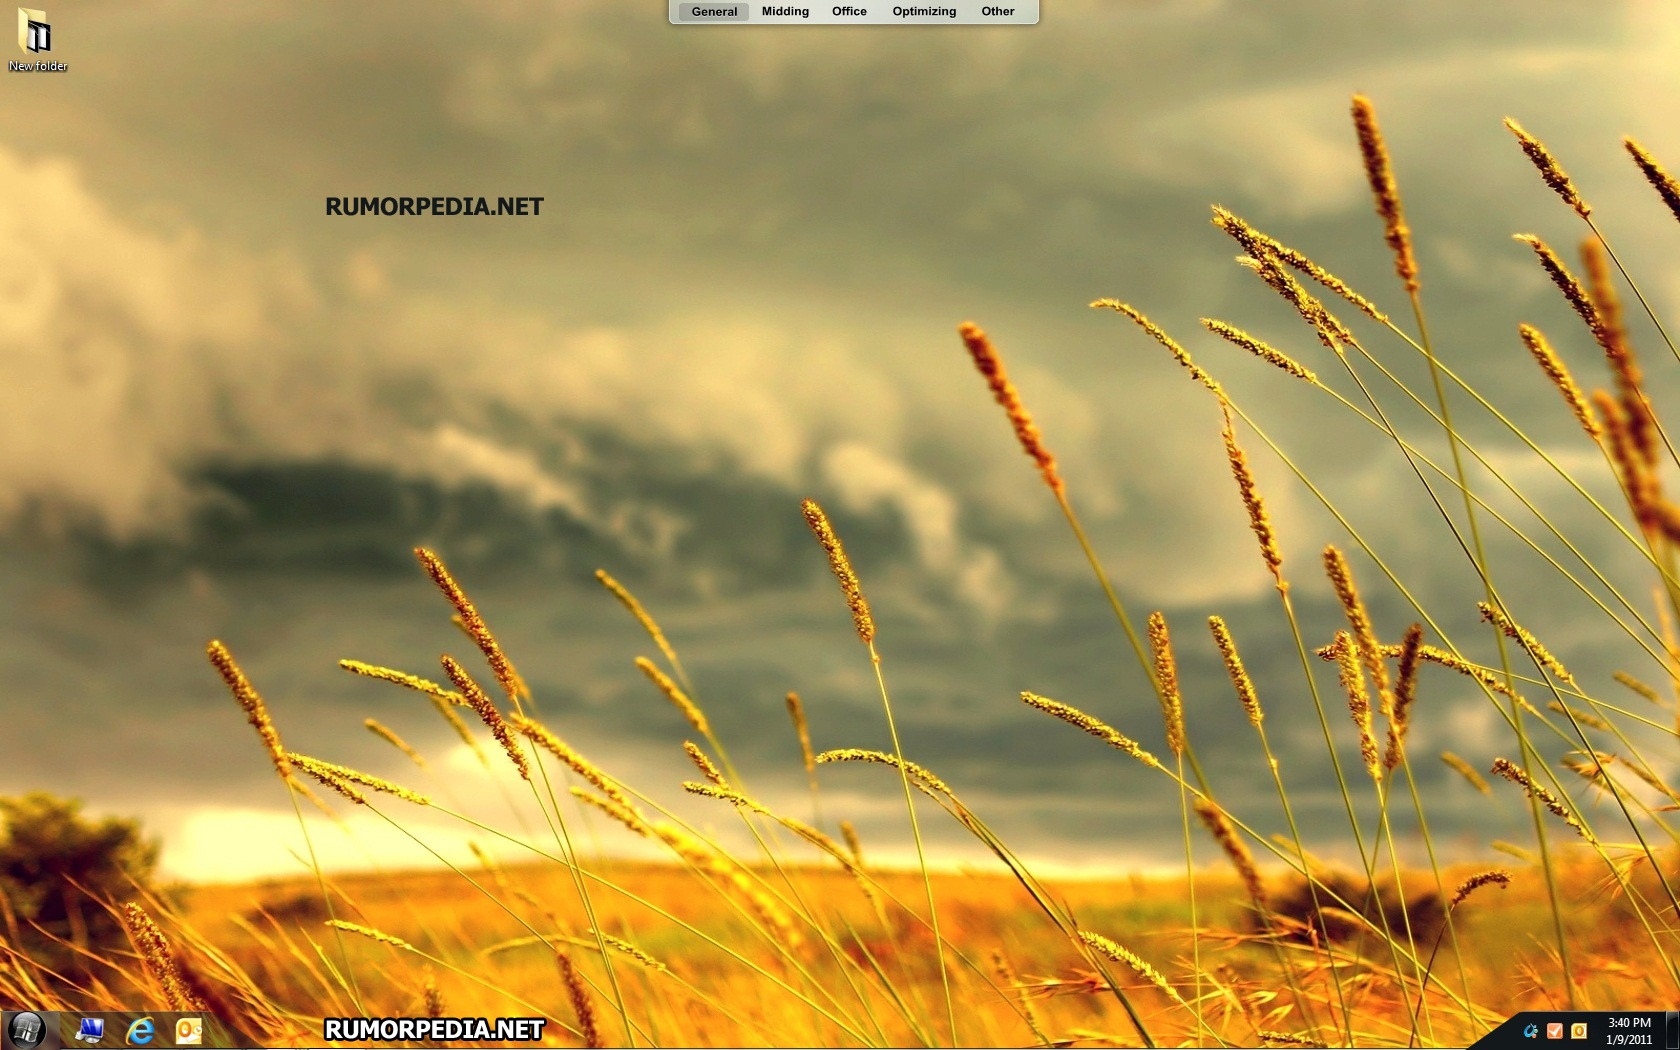 Windows 8 UI Screenshots and Details